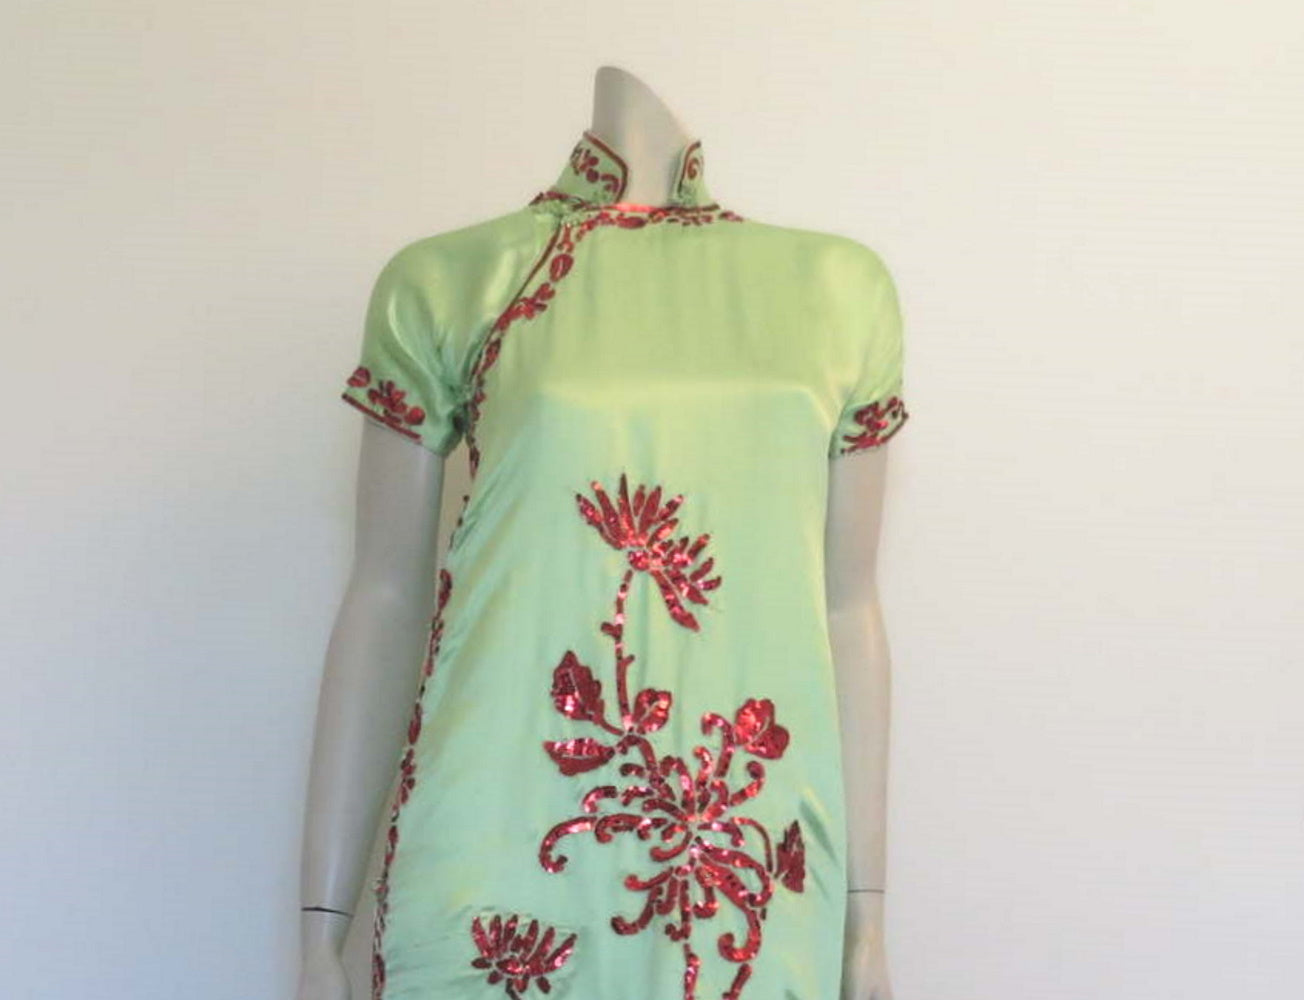 What's a Vintage Cheongsam?